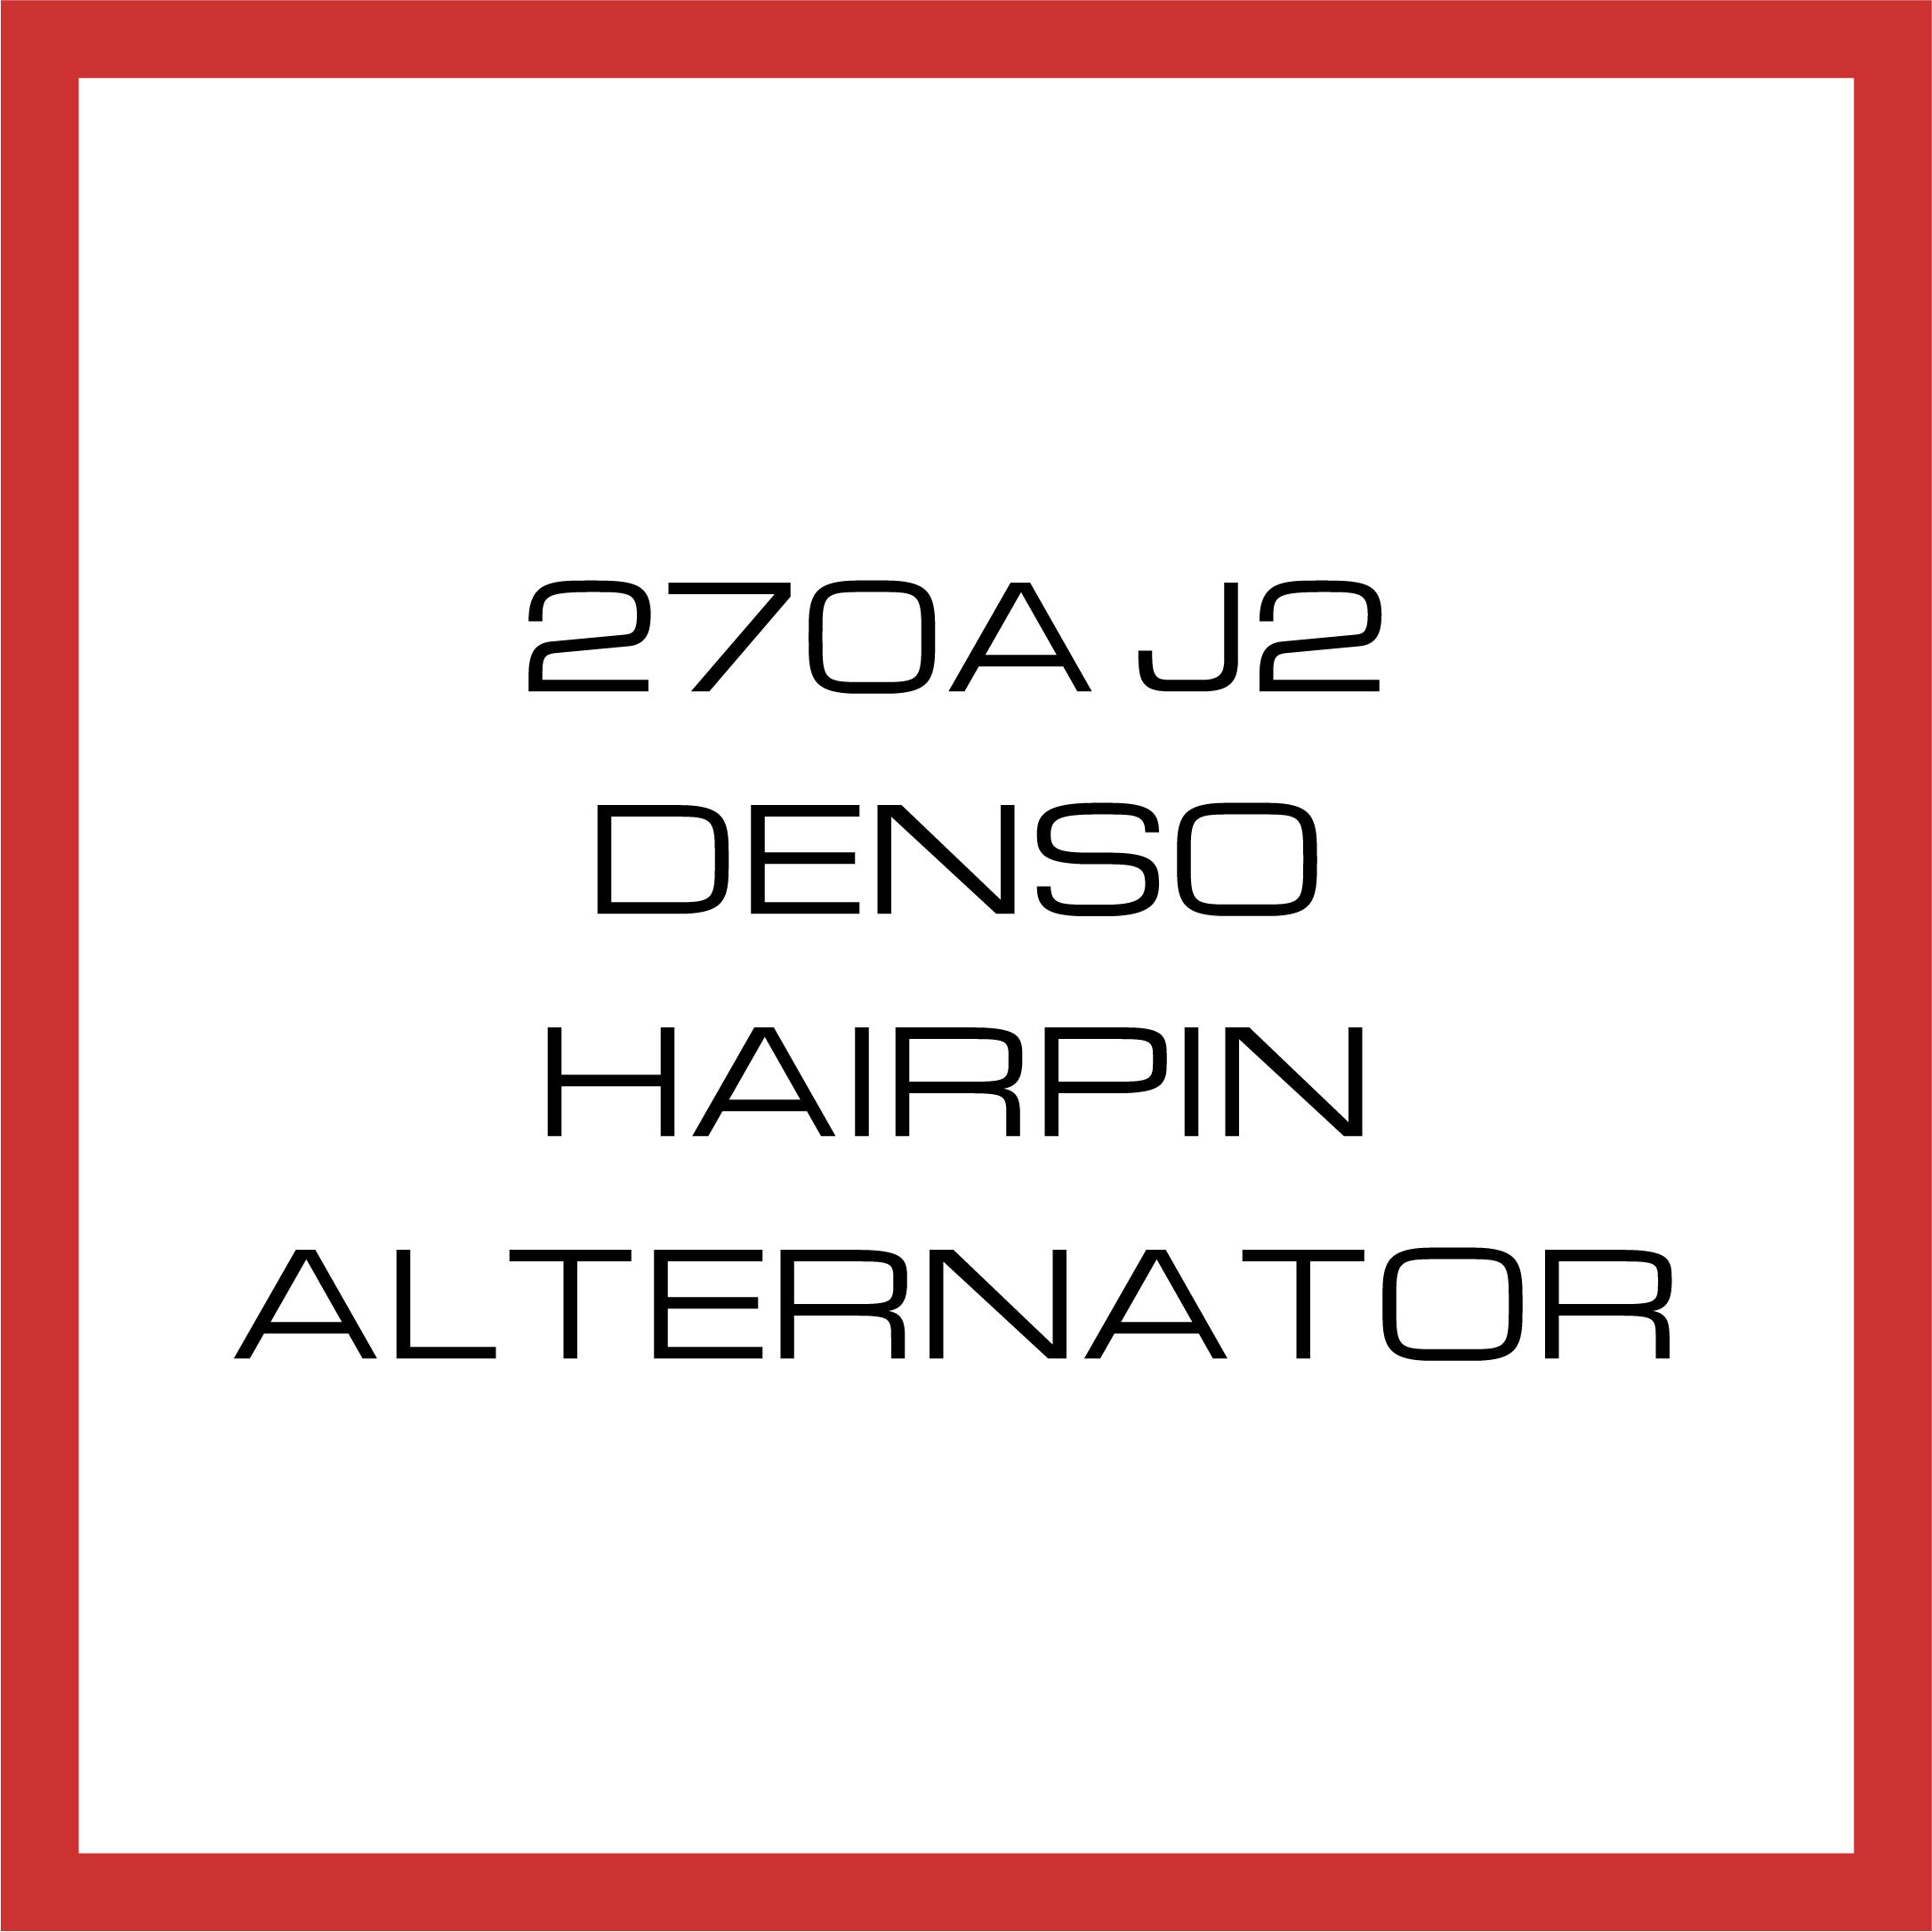 270A J2 Denso Hairpin Alternator